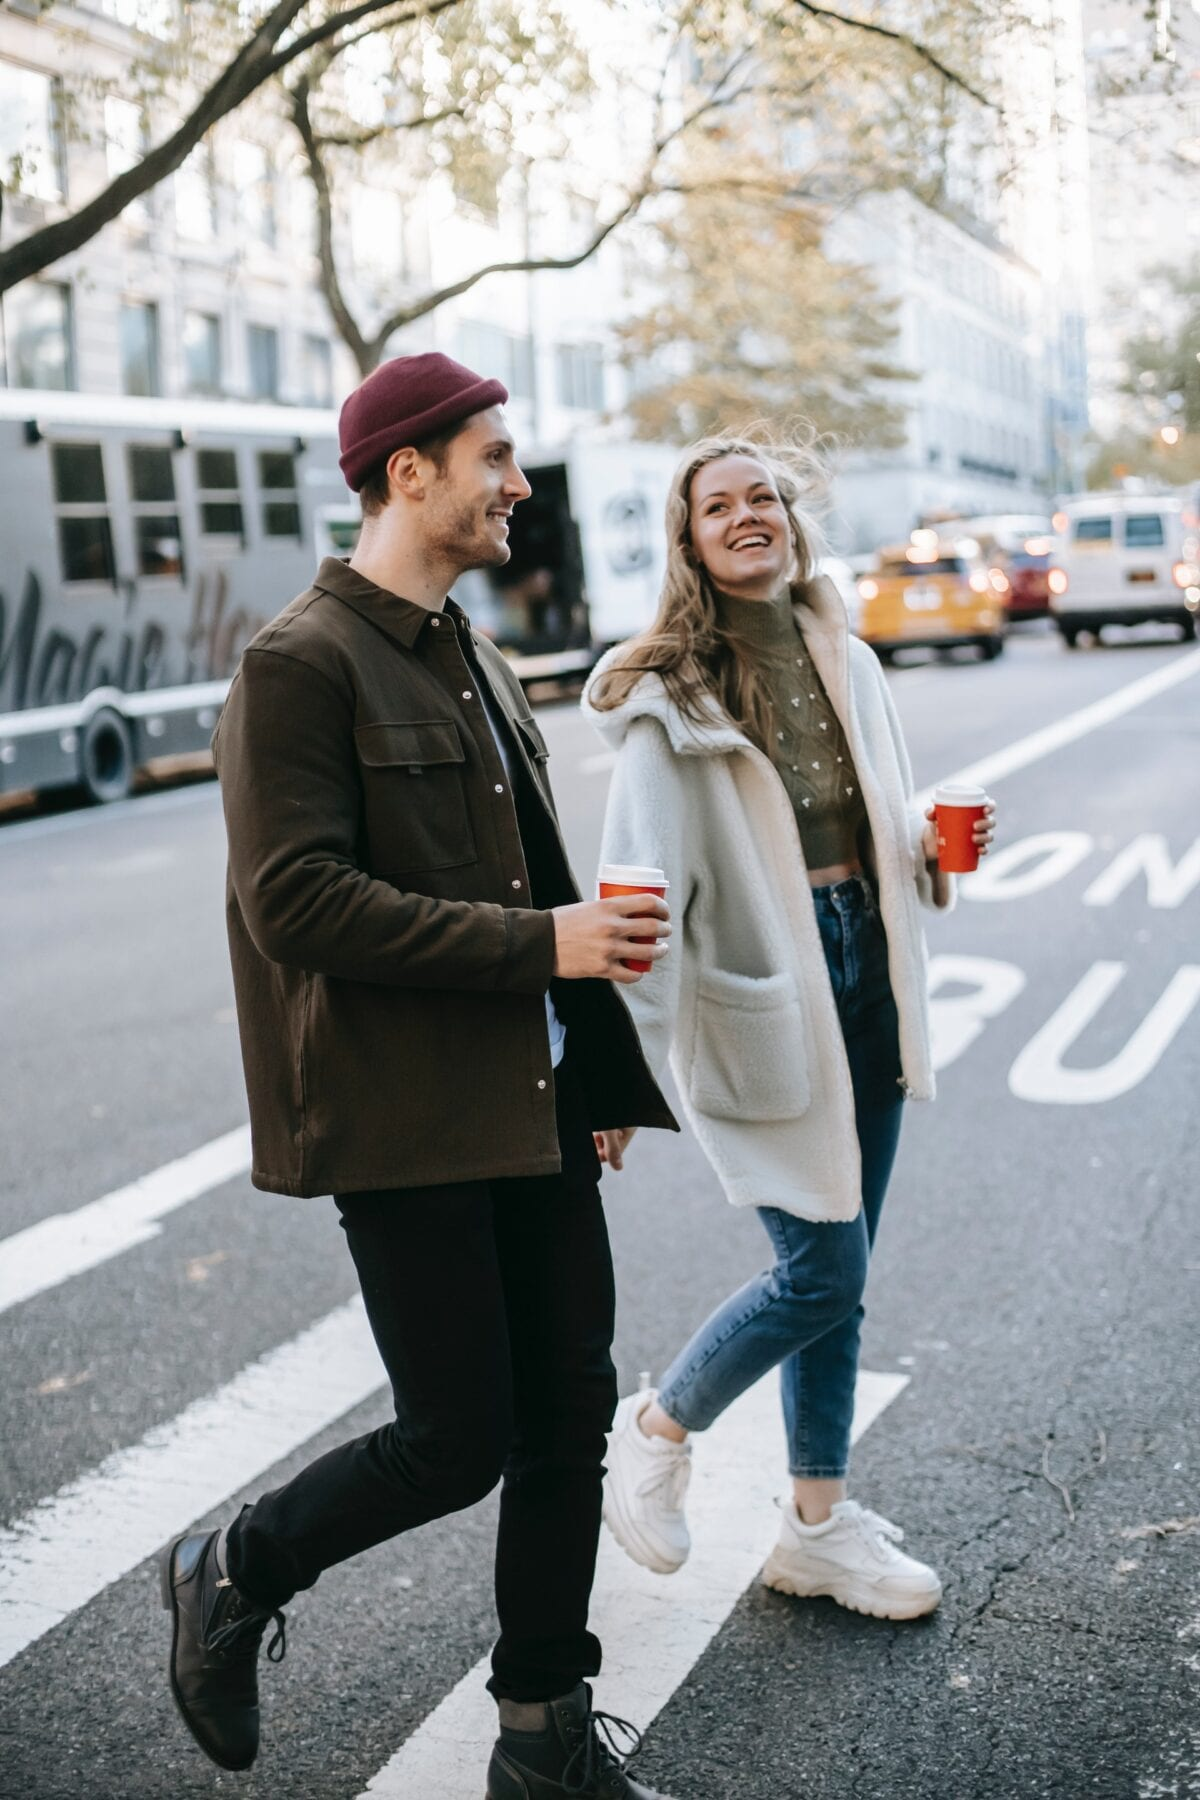 Couple walking on street with coffee cups